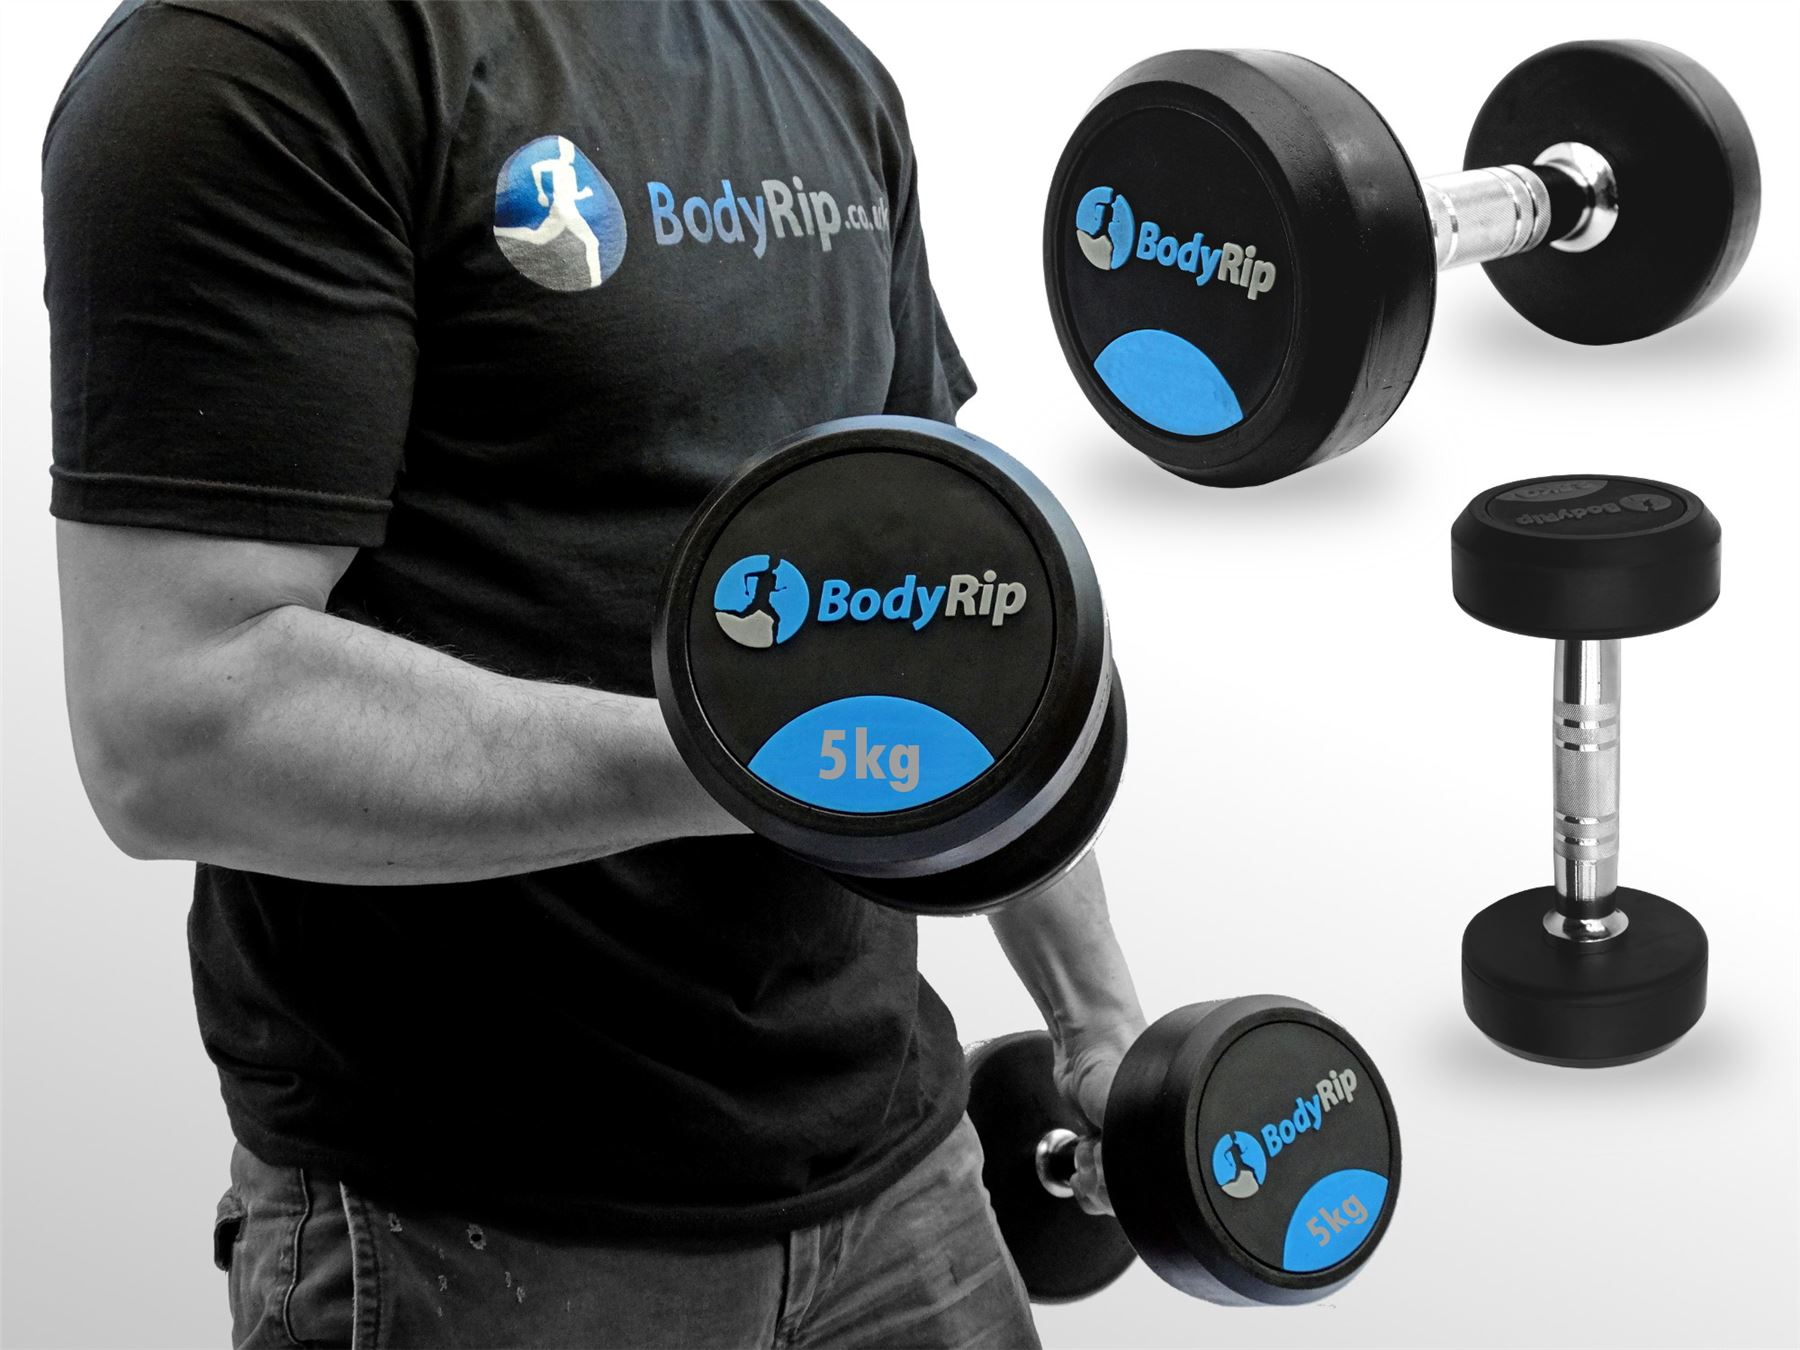 bodyrip fixed weights weight strength lifting dumbbell gym set 2 5kg